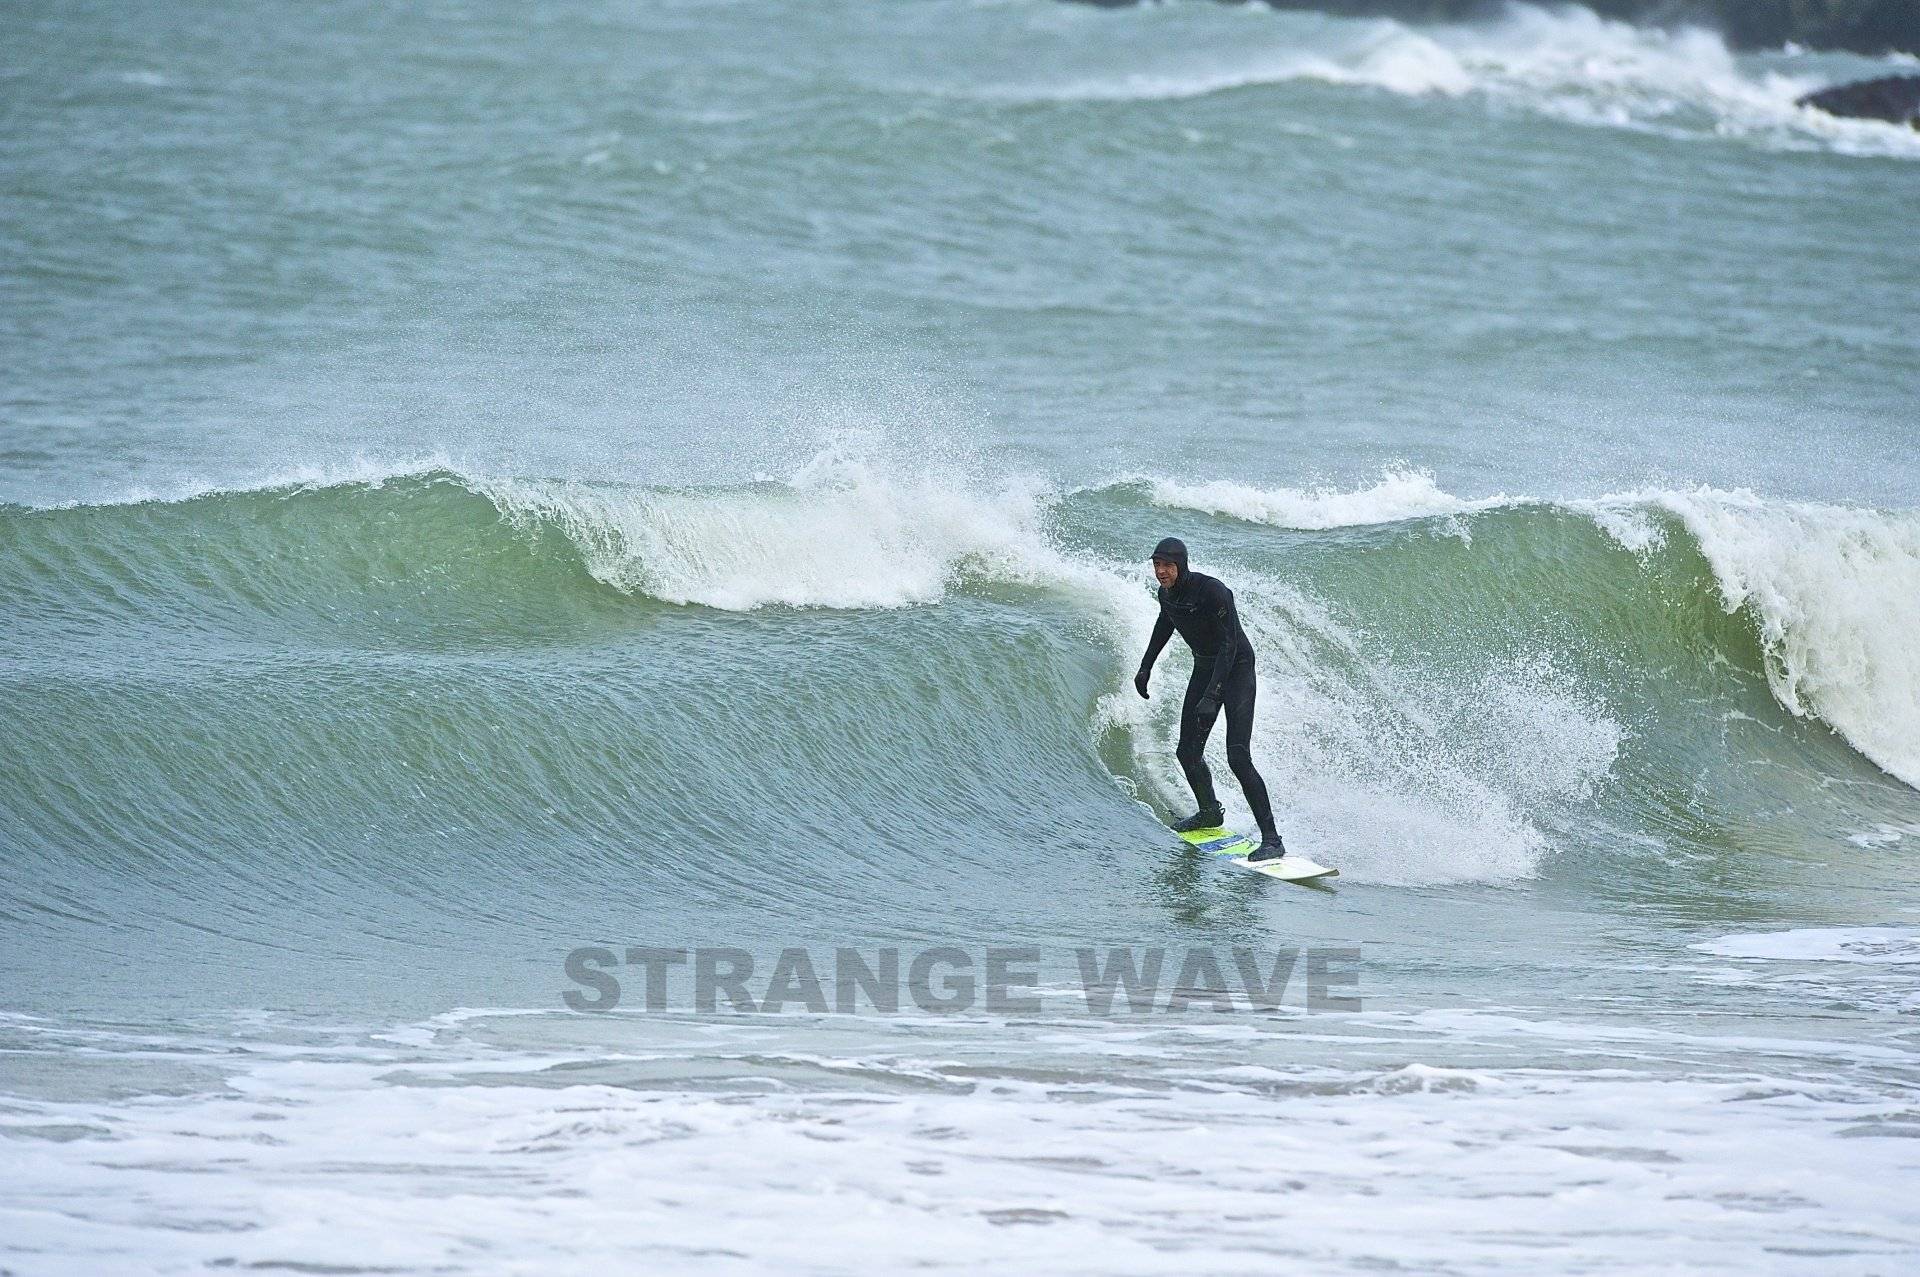 Grumpy Old Surfer's photo of Hells Mouth (Porth Neigwl)